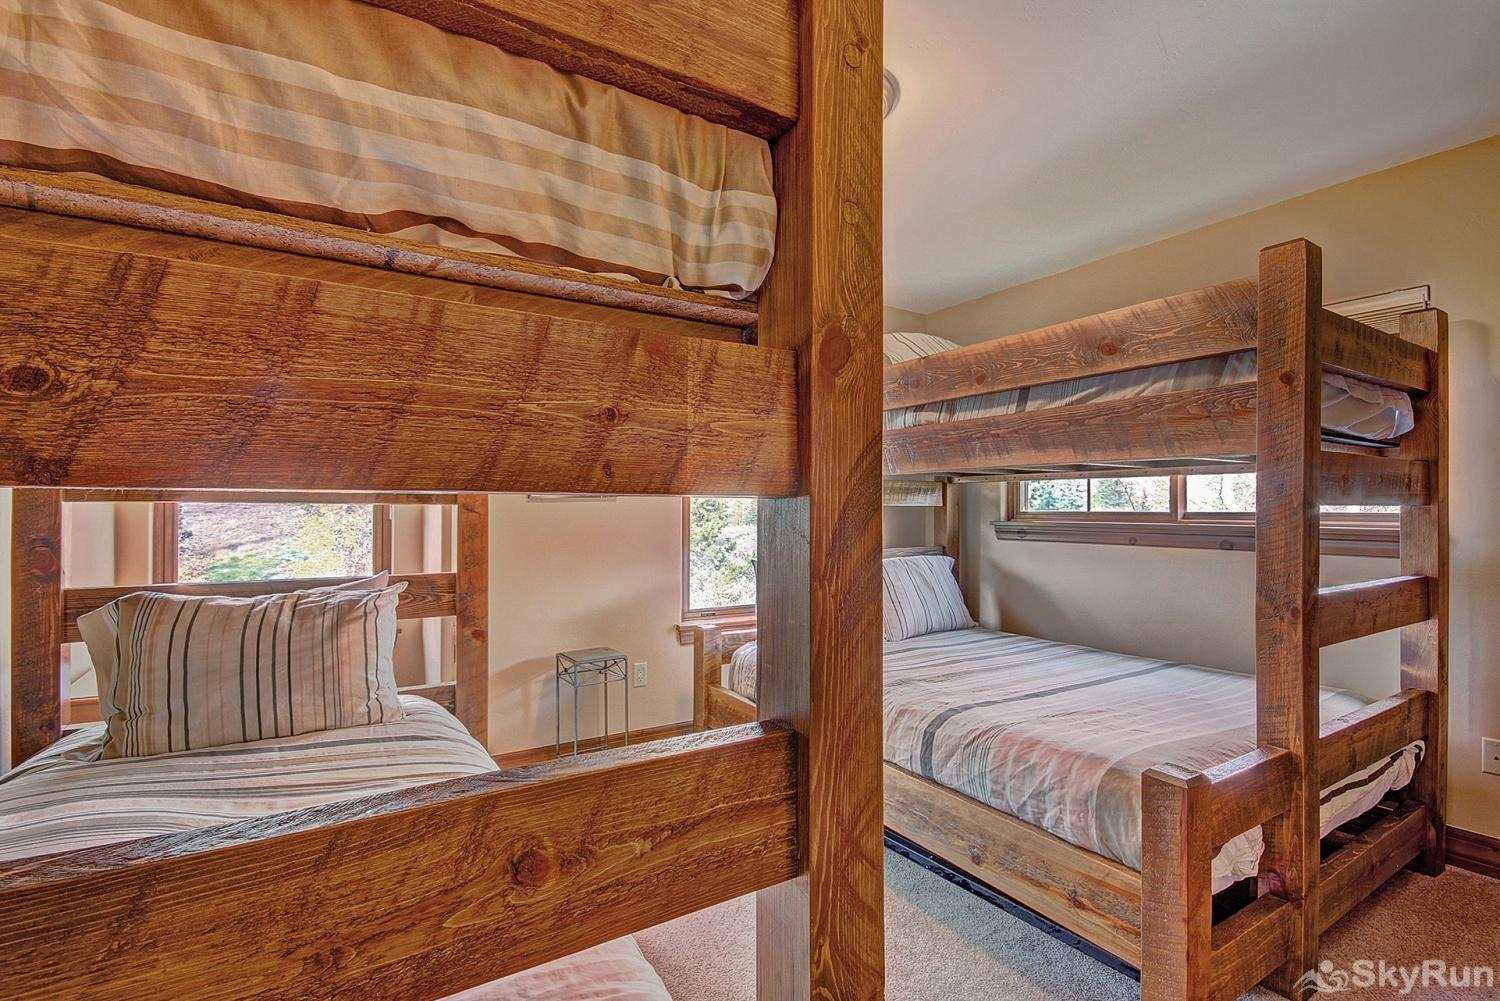 Highland Greens Spruce Upper level bunk room with twin over twin, and twin over full bunk beds